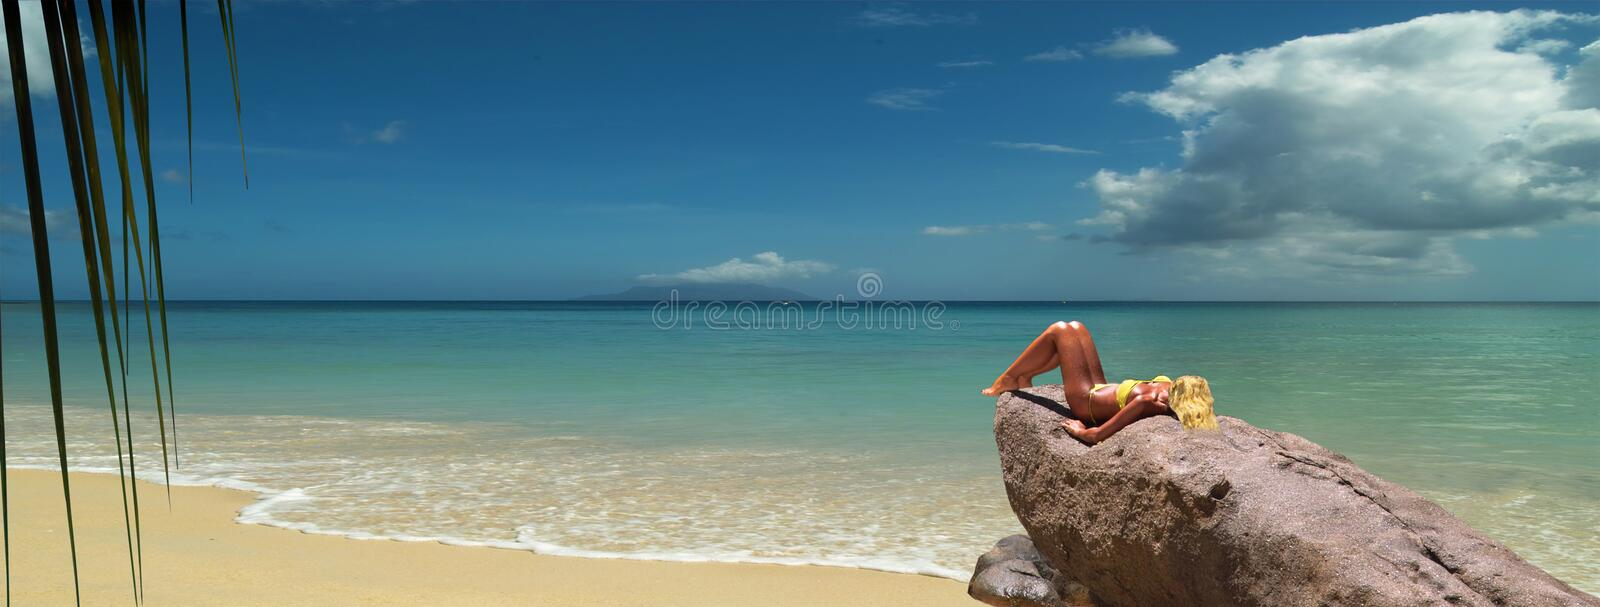 Tanning blond model, beach rock. Panorama royalty free stock images